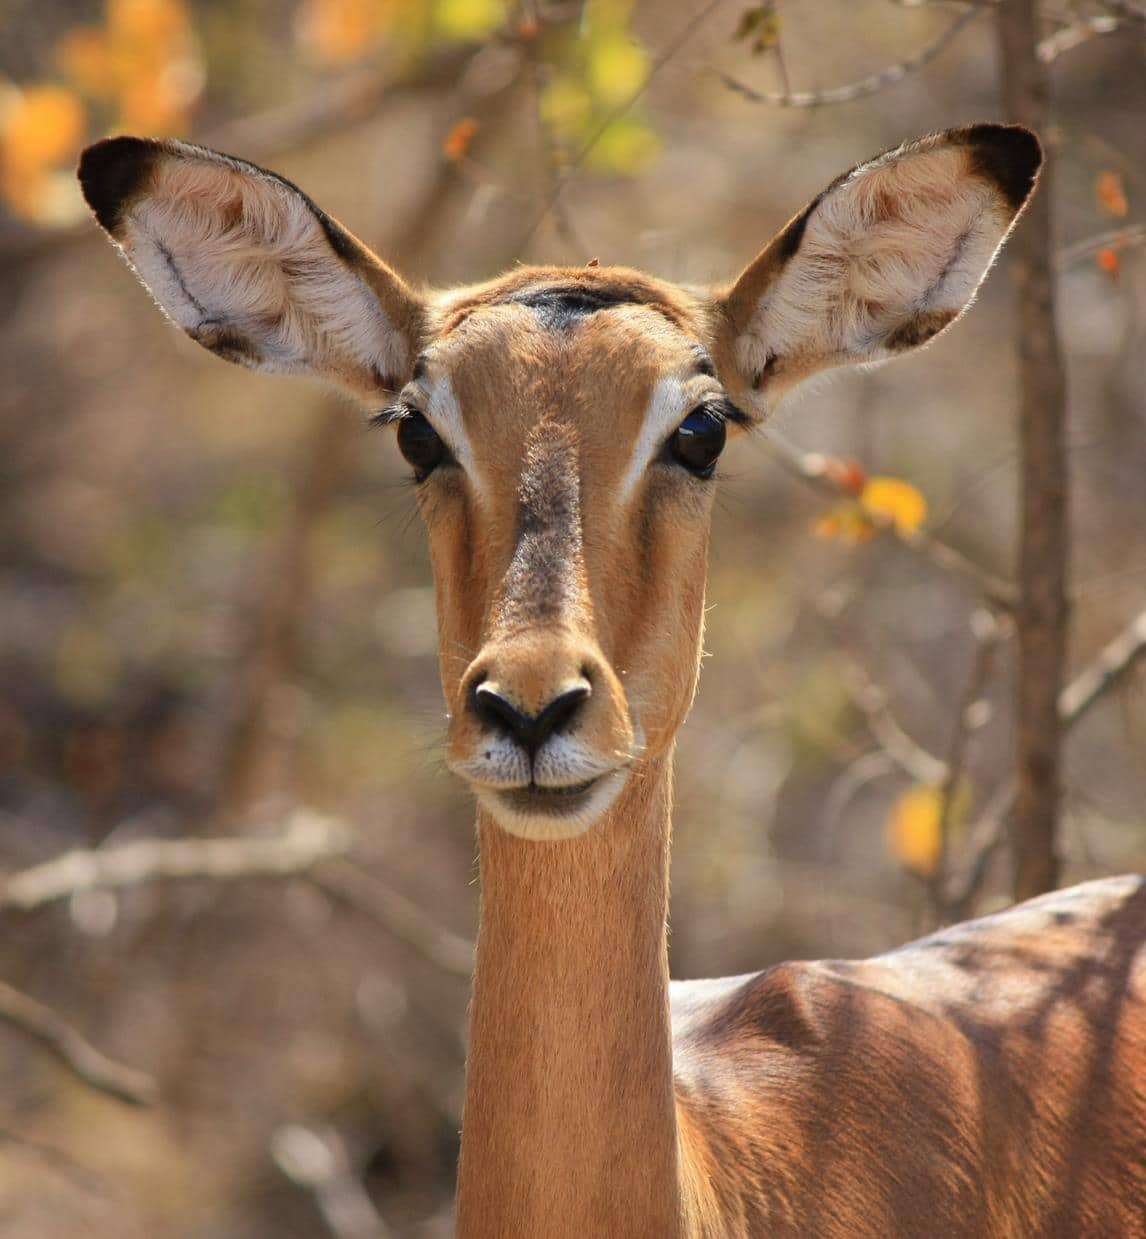 Impala with soft doe eyes.